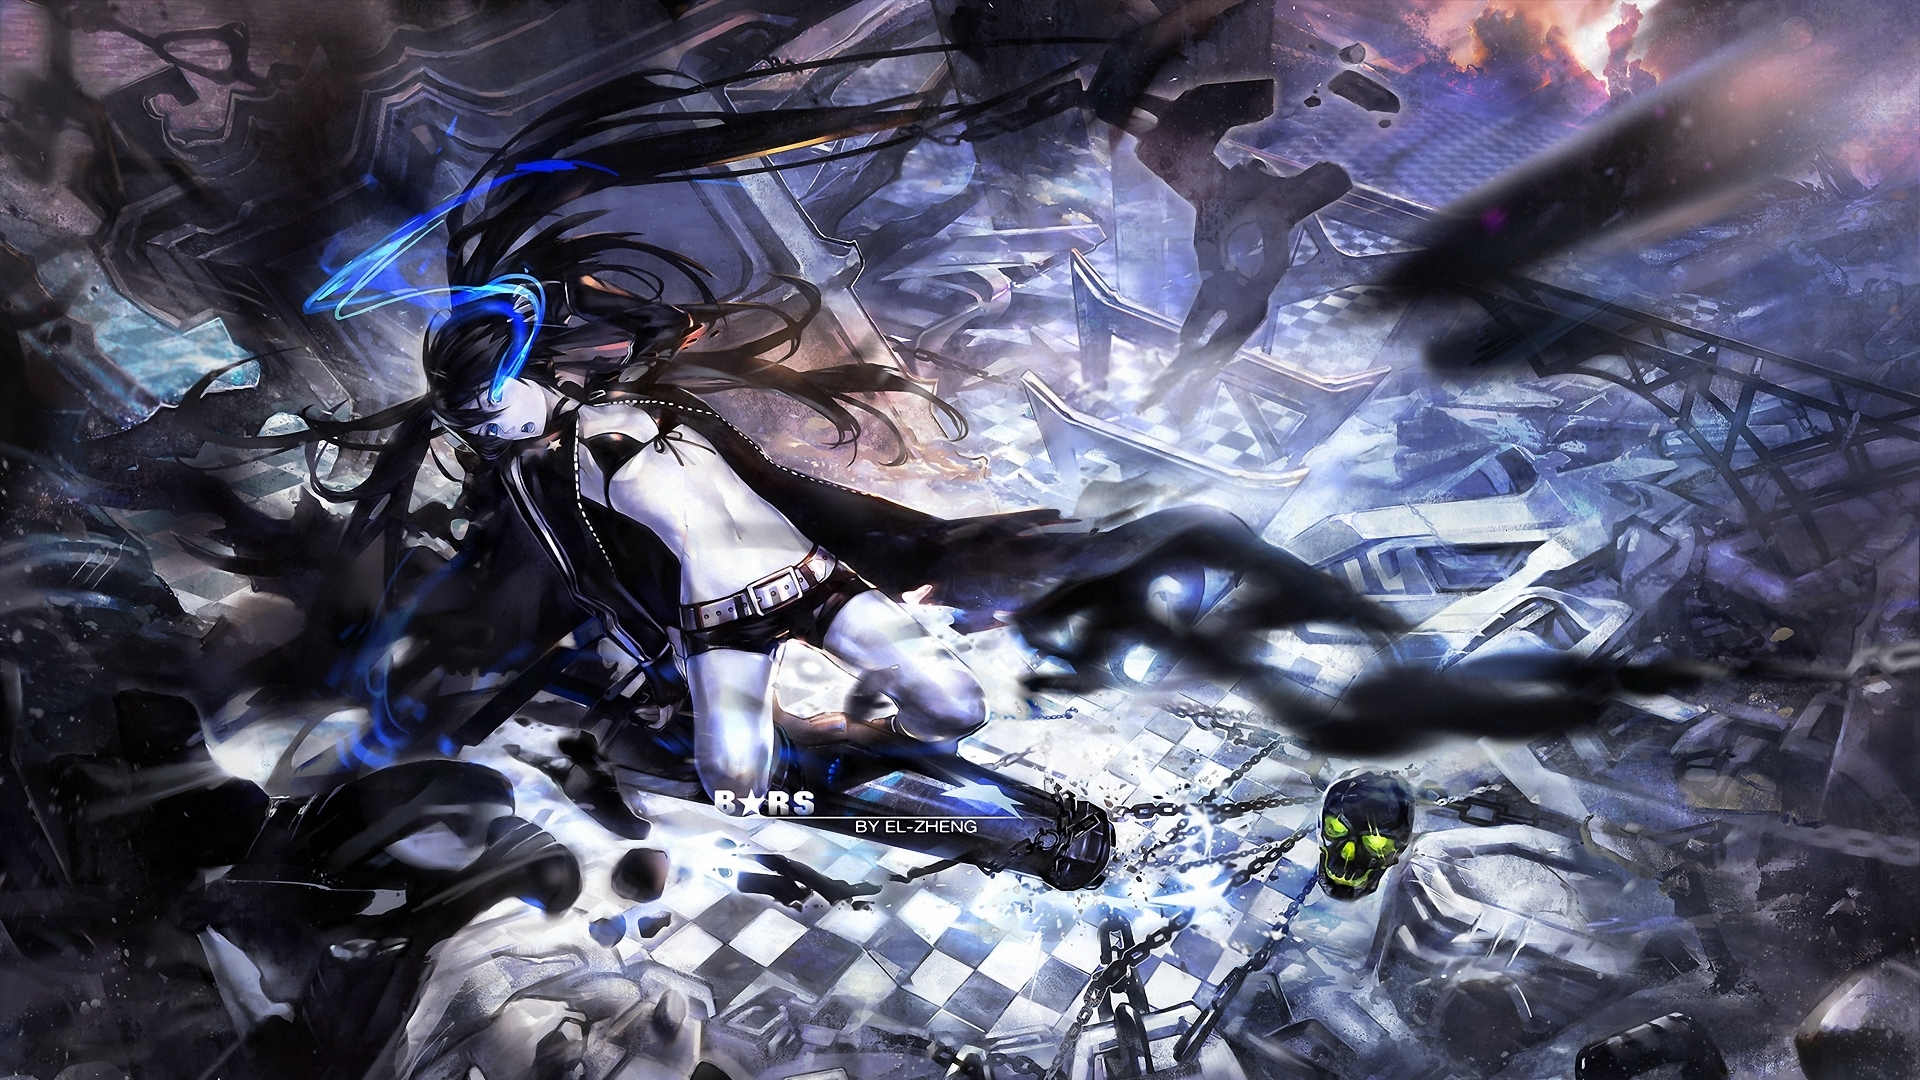 black rock shooter hd wallpaper